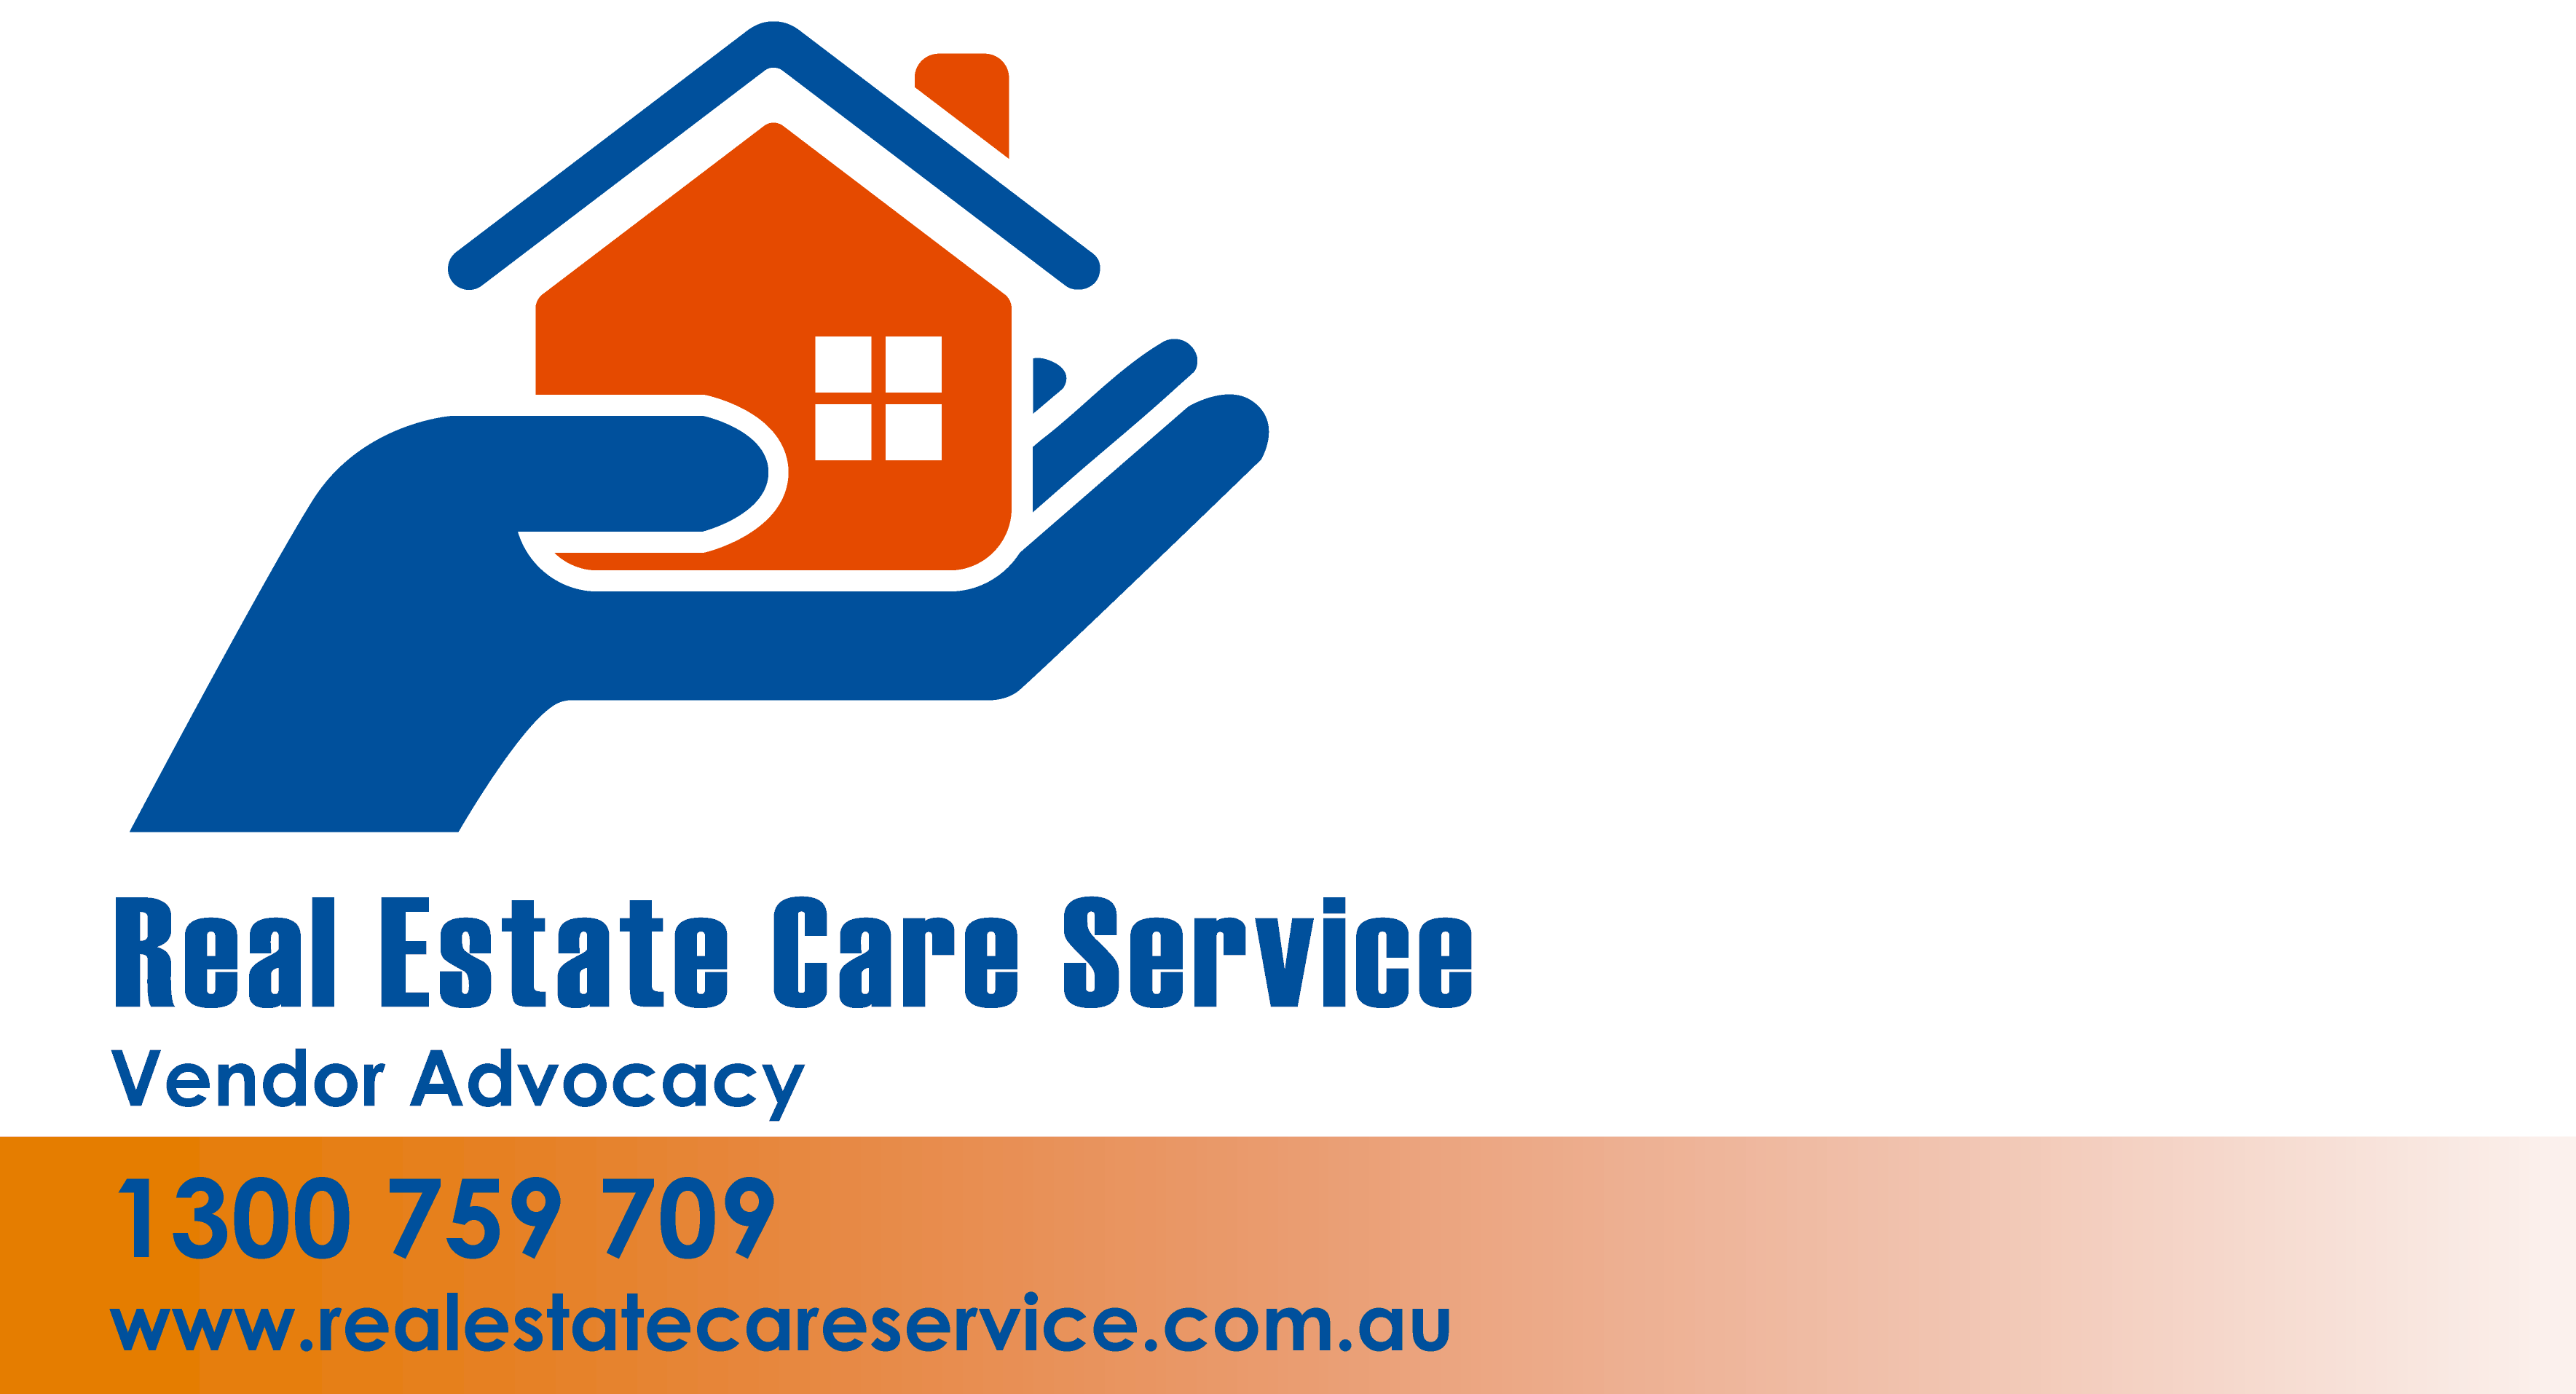 Real Estate Care Service logo